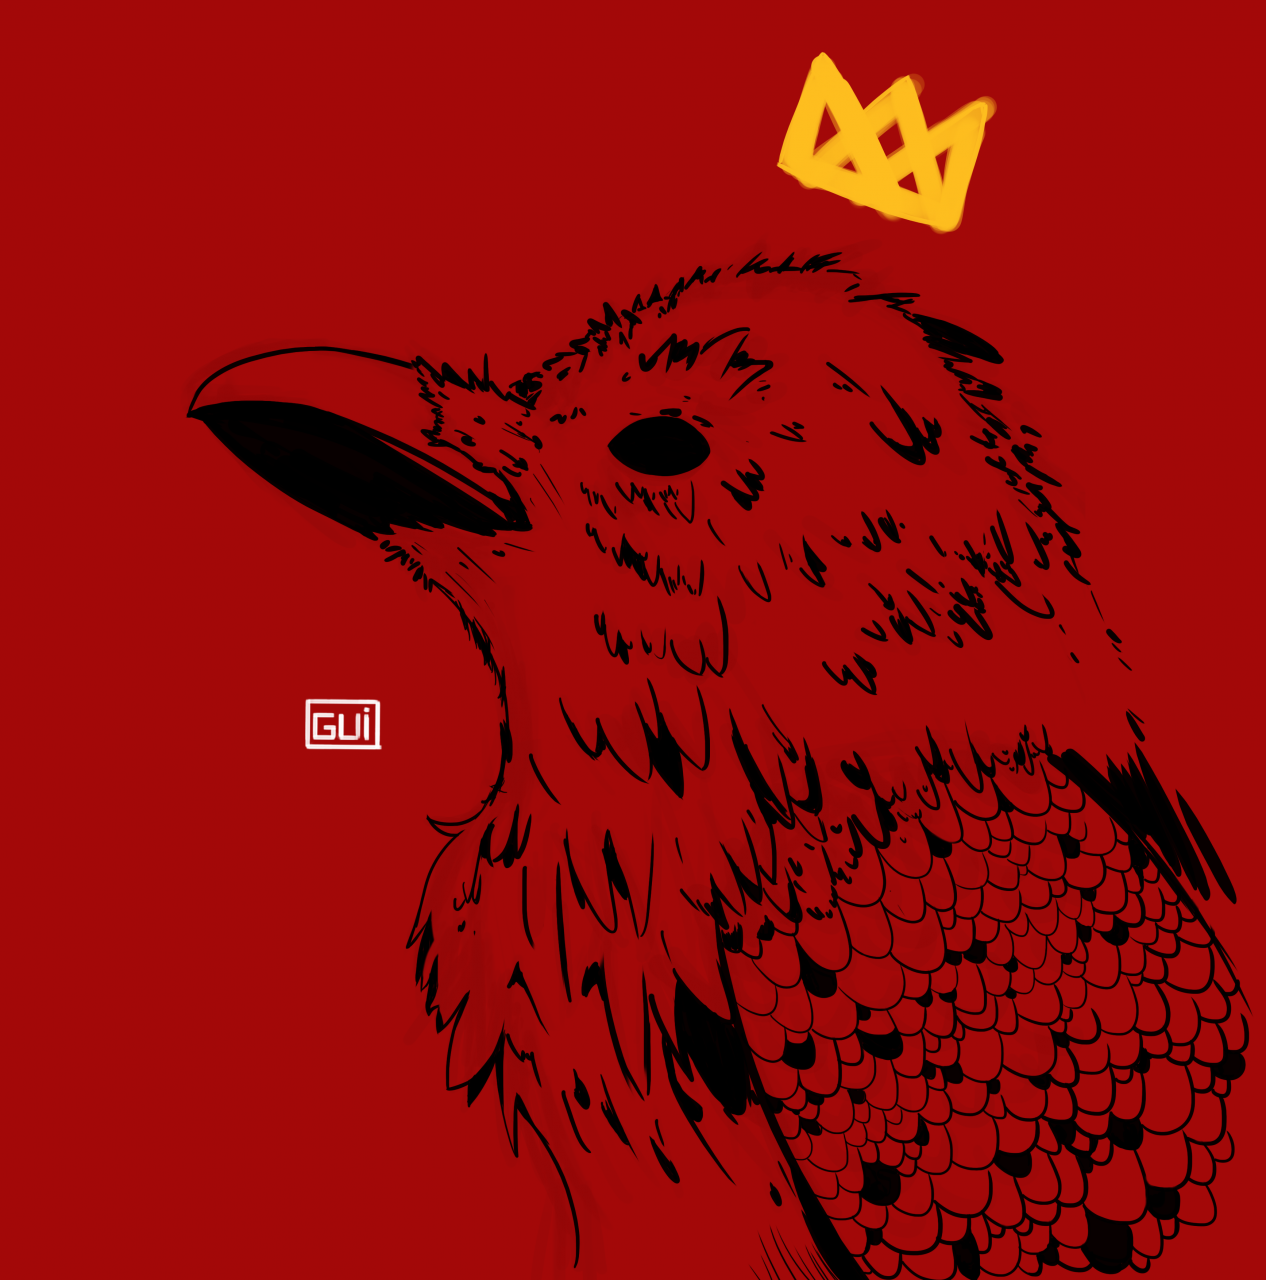 Crow King - Do you think this image can be turned into a Tattoo? Any advice?